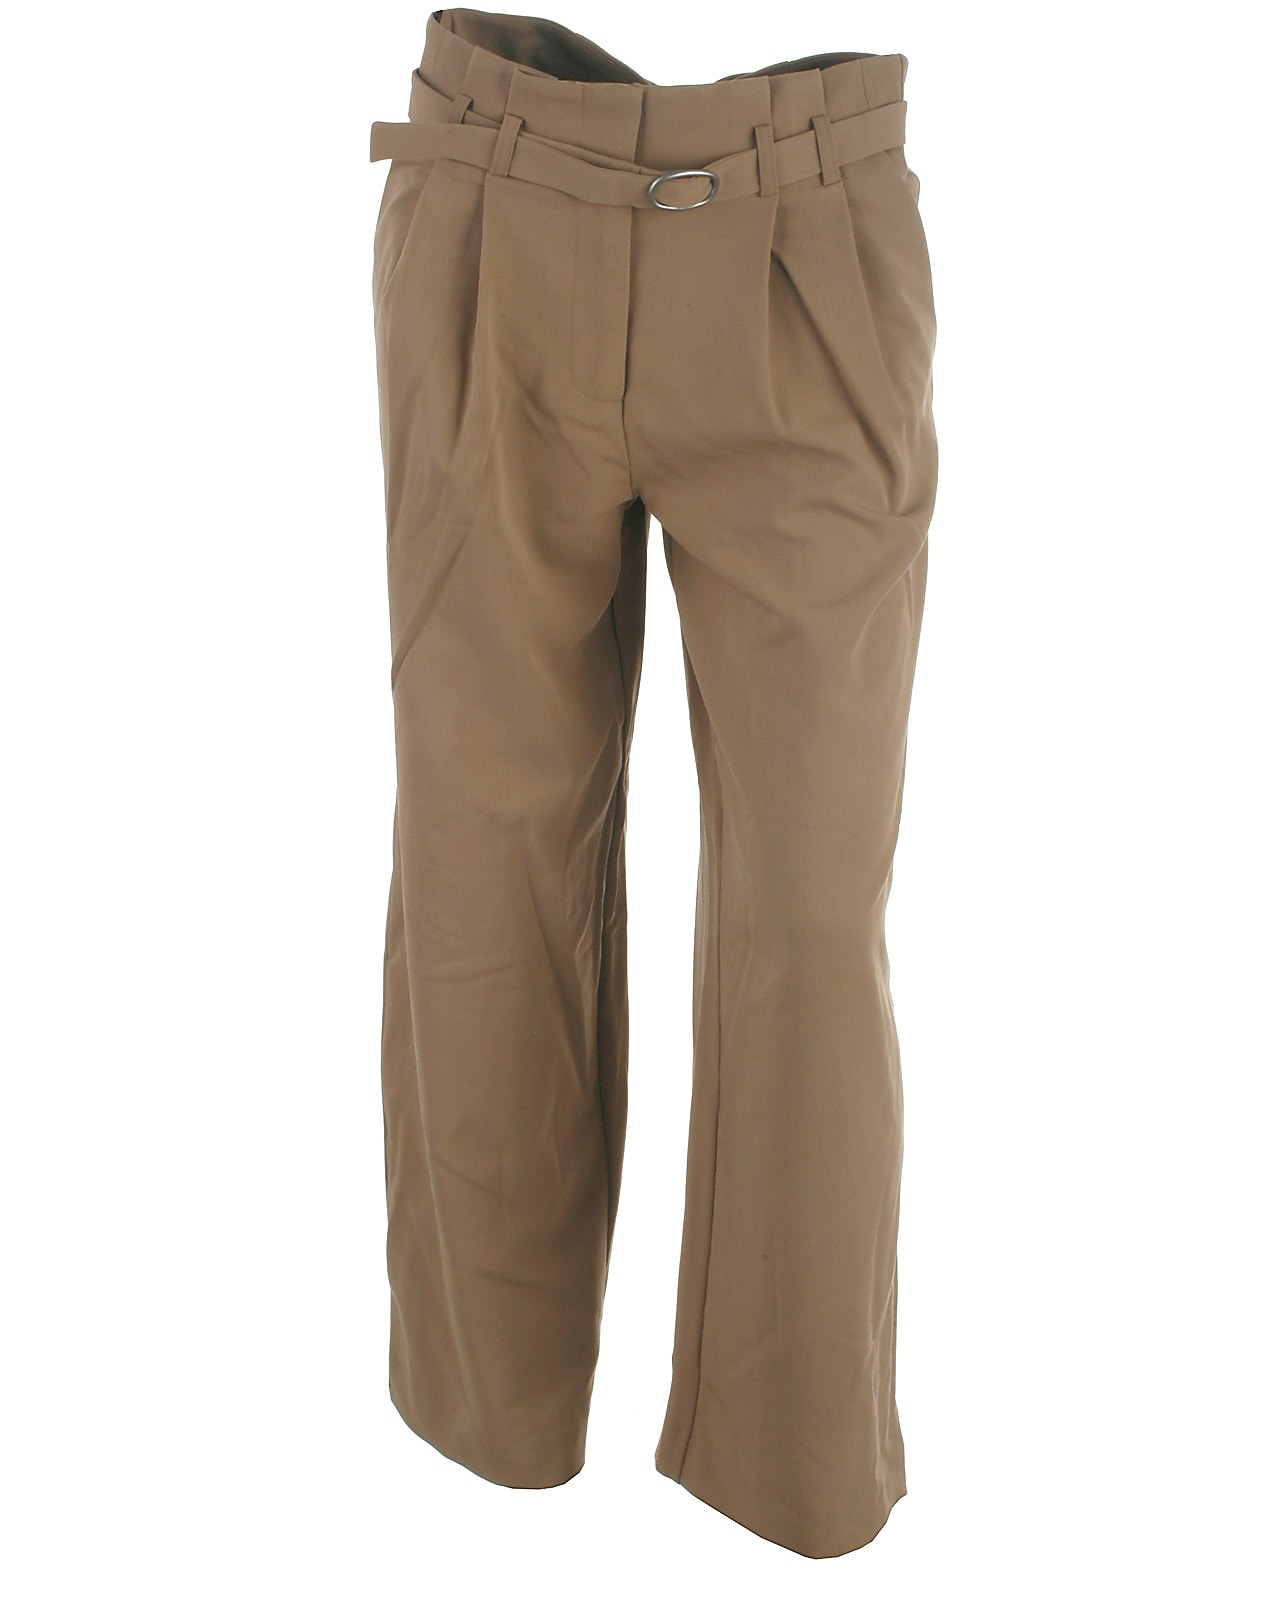 Image of Only ankel wide pant, Payton, tannin